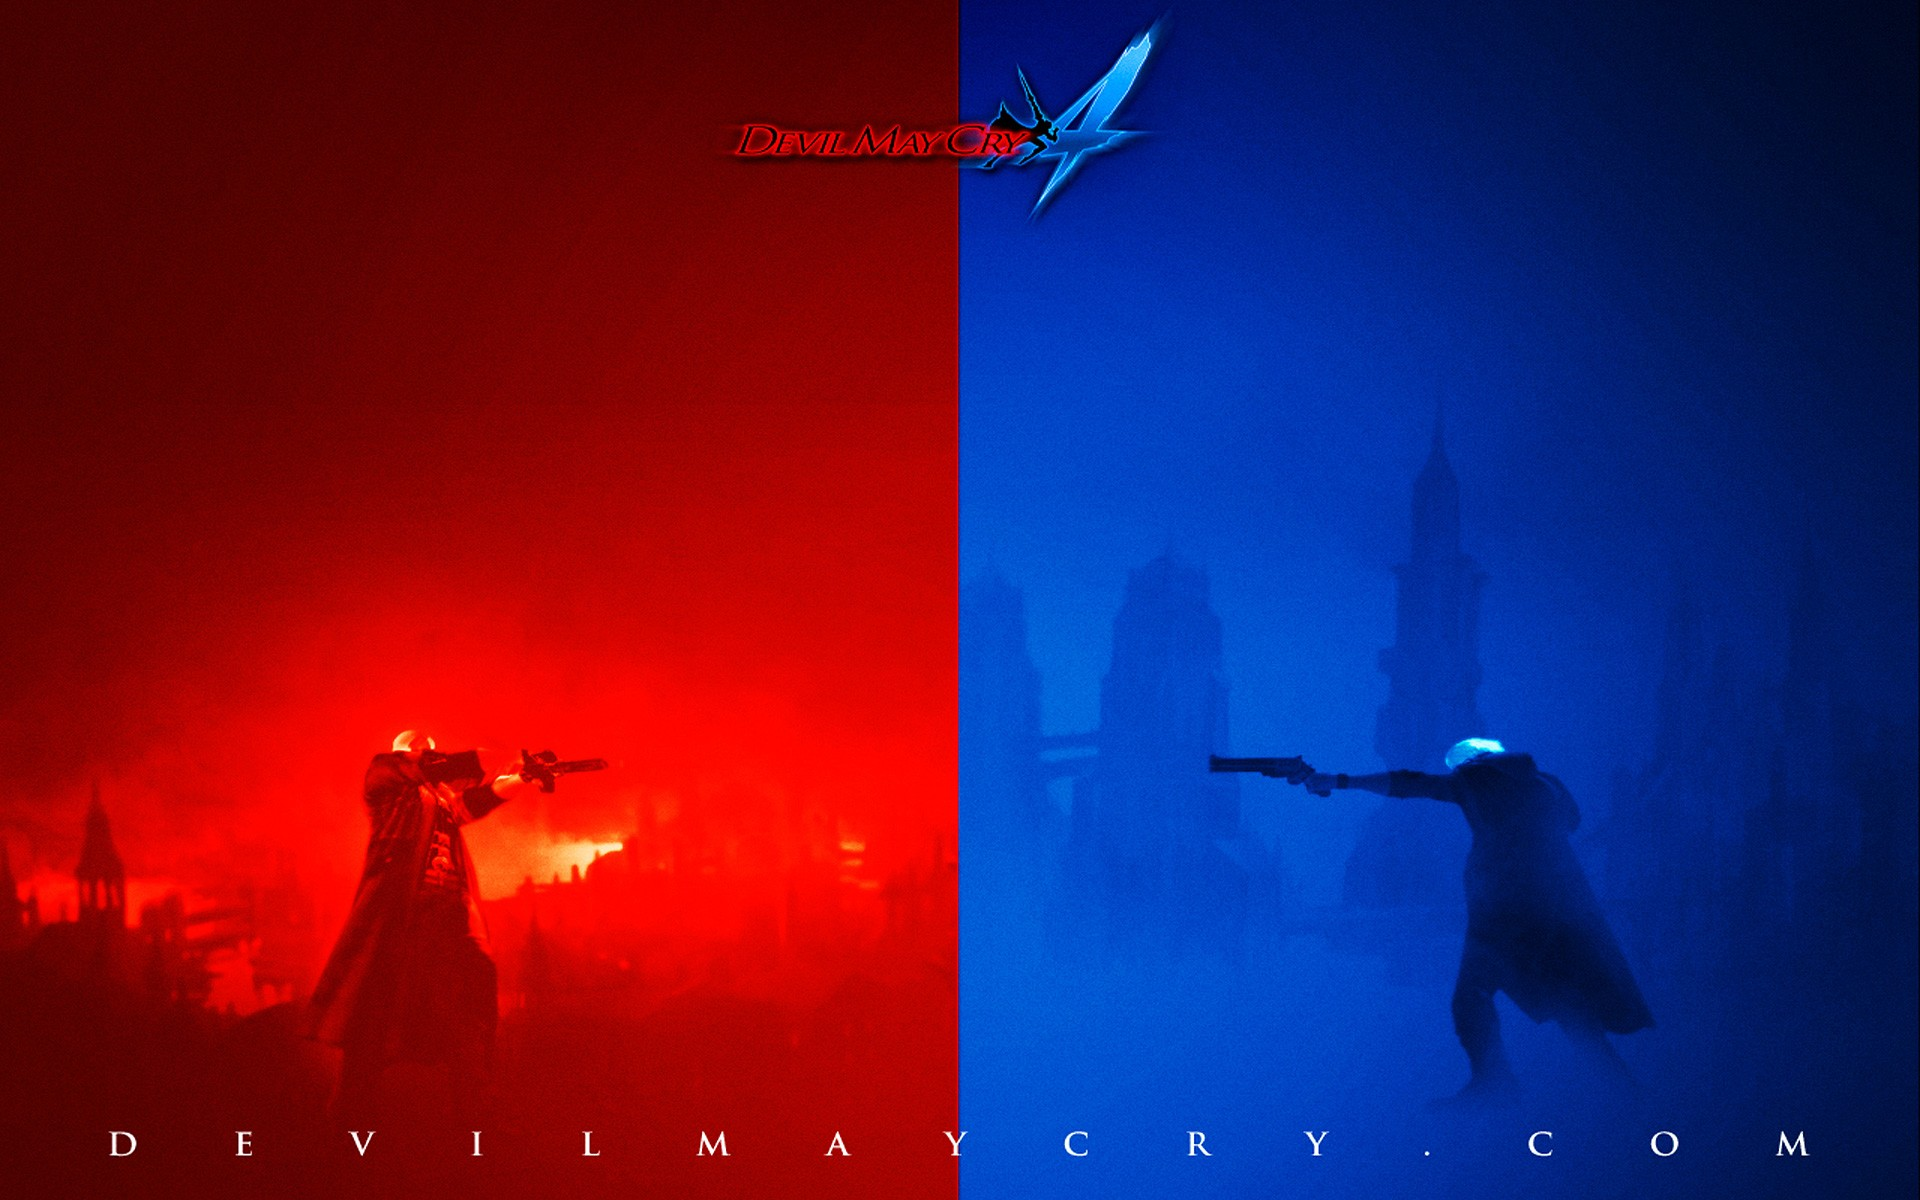 Devil may cry 4 full hd wallpaper and background image 1920x1200 video game devil may cry 4 wallpaper voltagebd Image collections